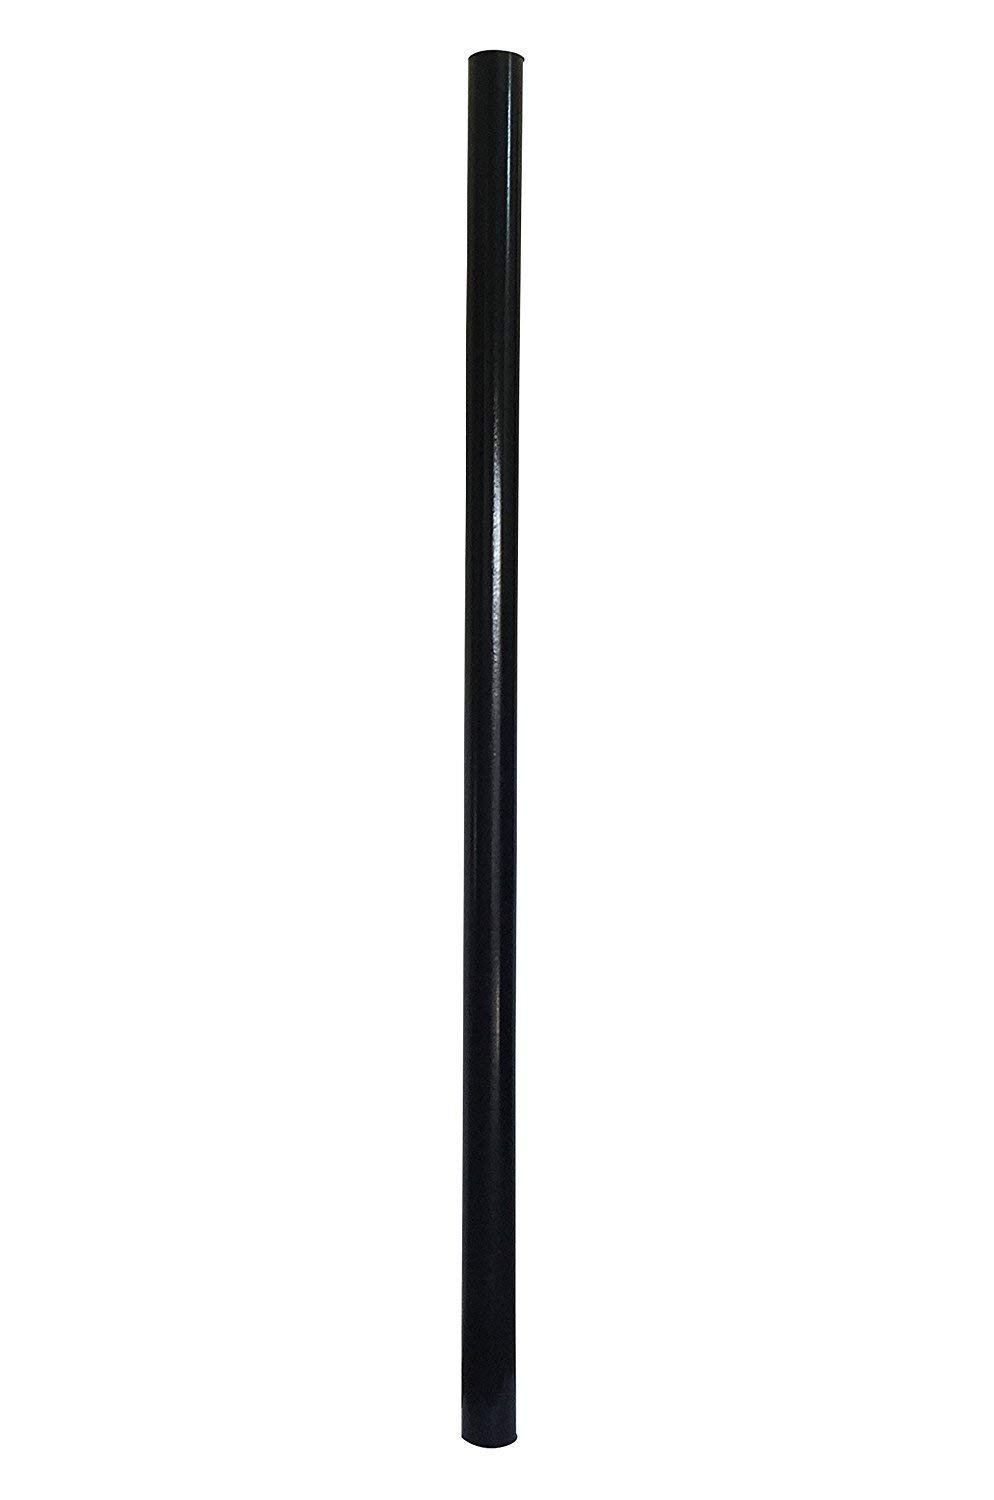 Espero 84-in Outdoor Lamp Post with Fiberglass Light Post for Yard Driveway,Black